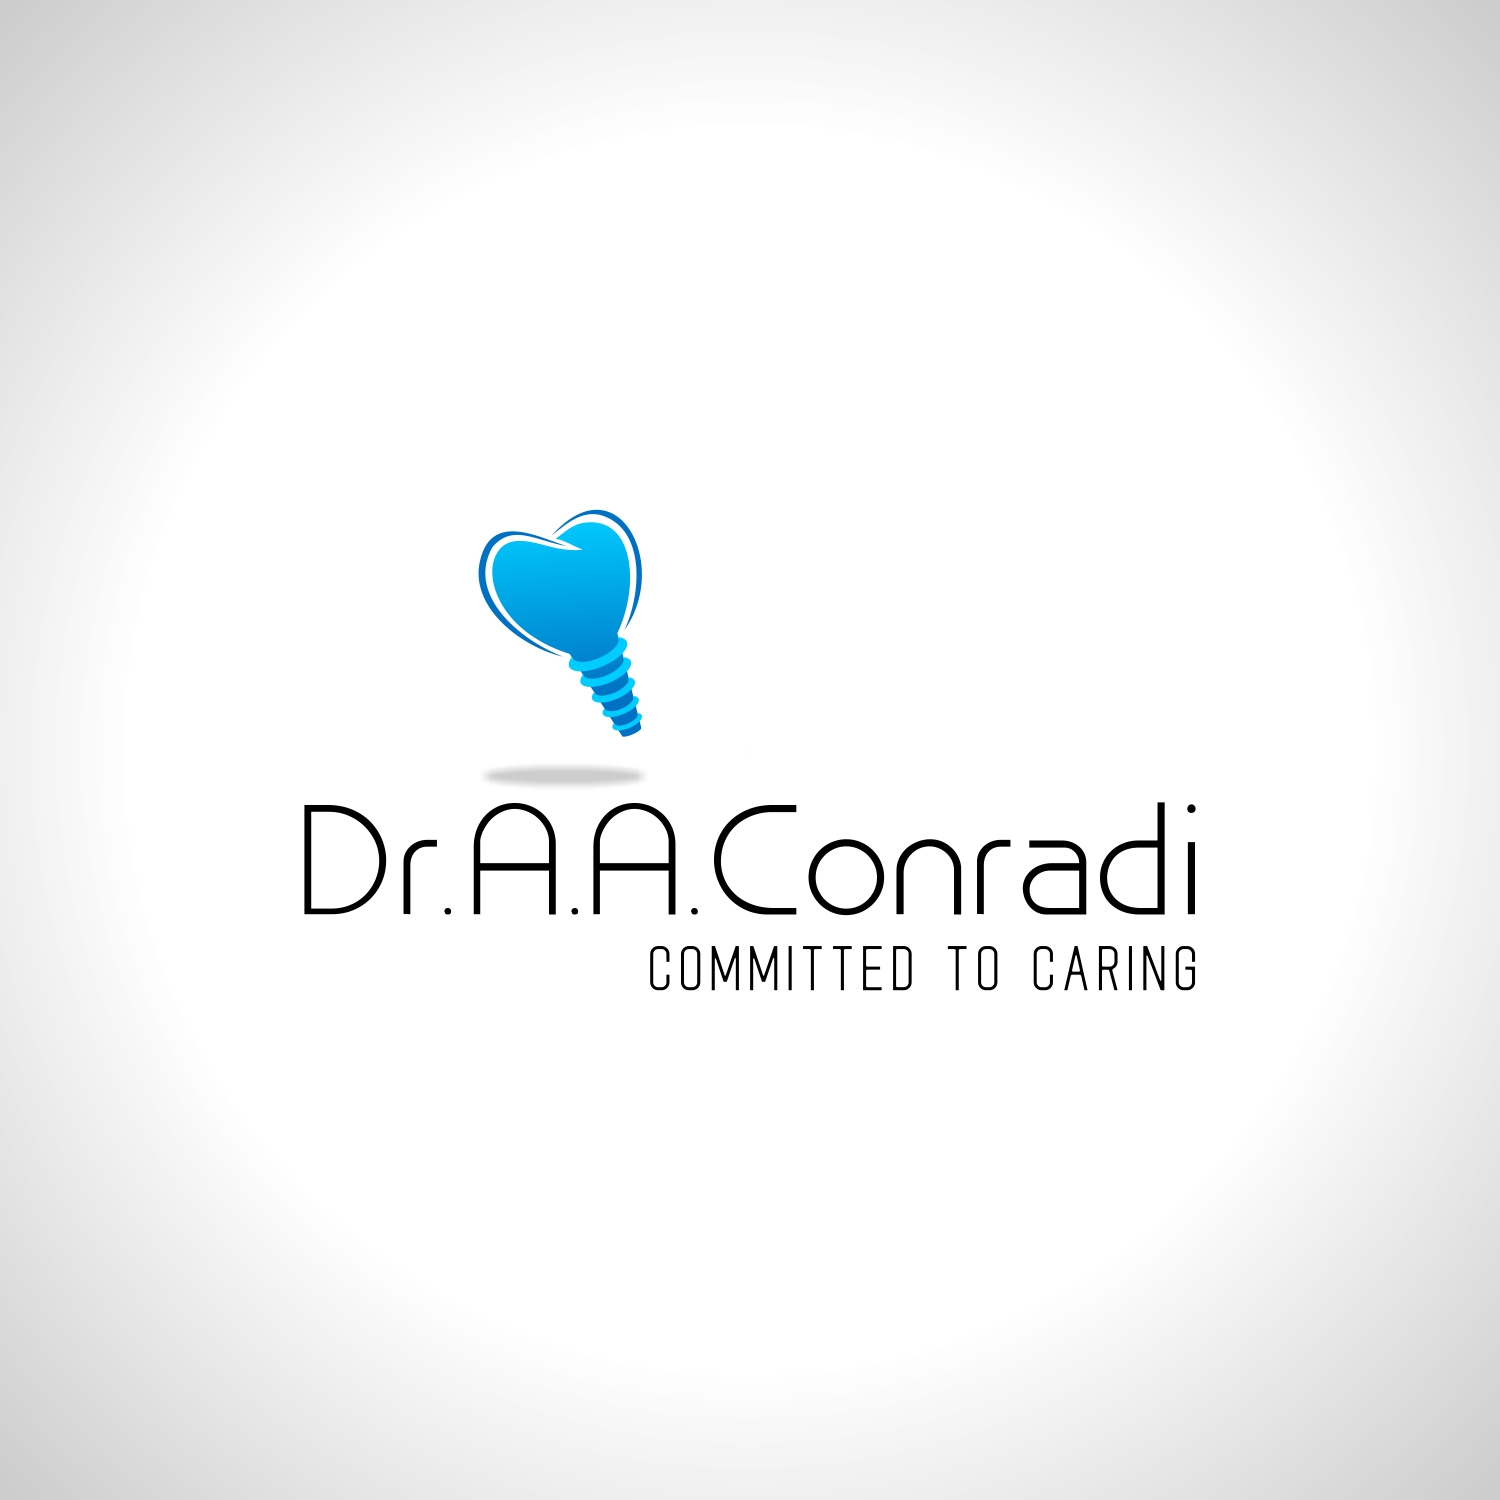 Logo Design by martinz - Entry No. 80 in the Logo Design Contest Unique Logo Design Wanted for Dr. A.A. Conradi.